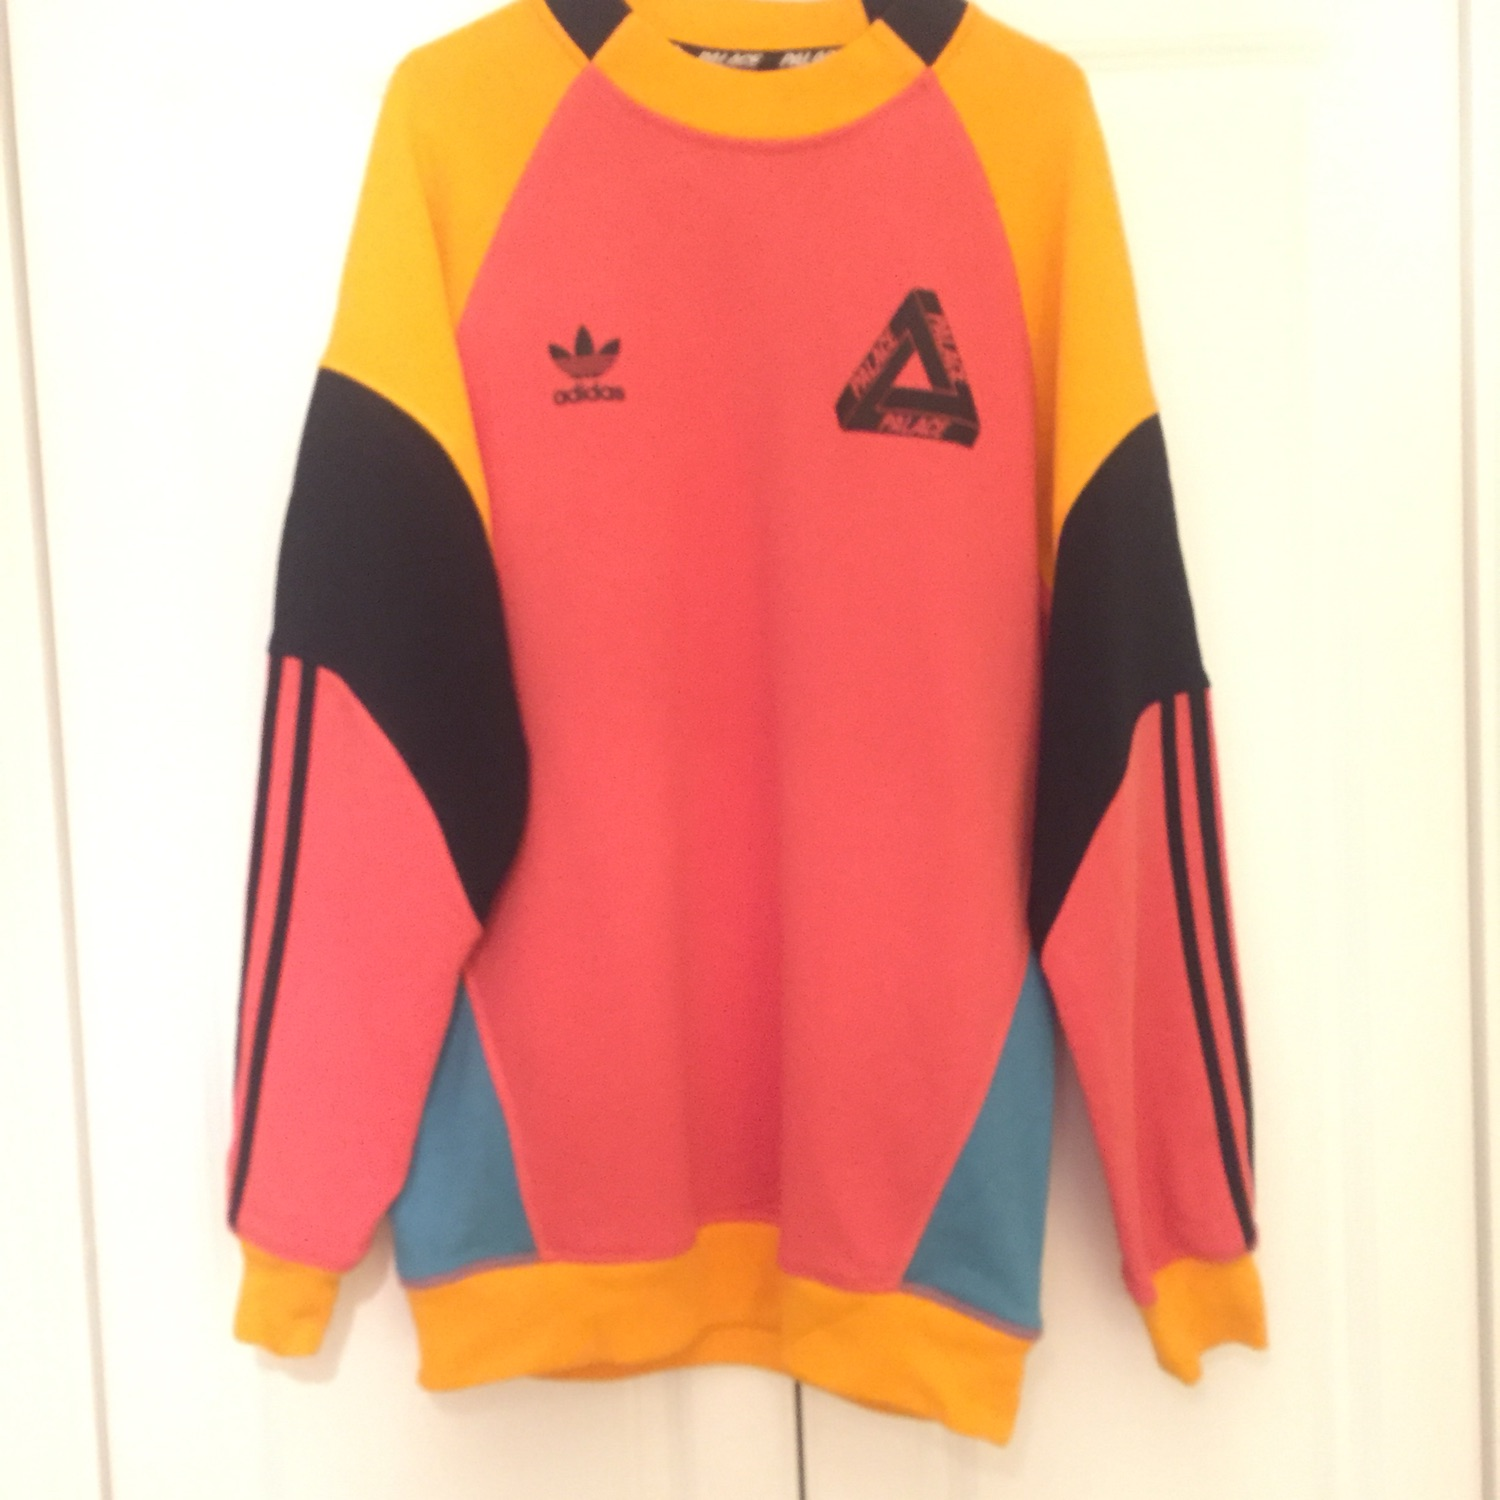 Palace X Adidas. Size Medium